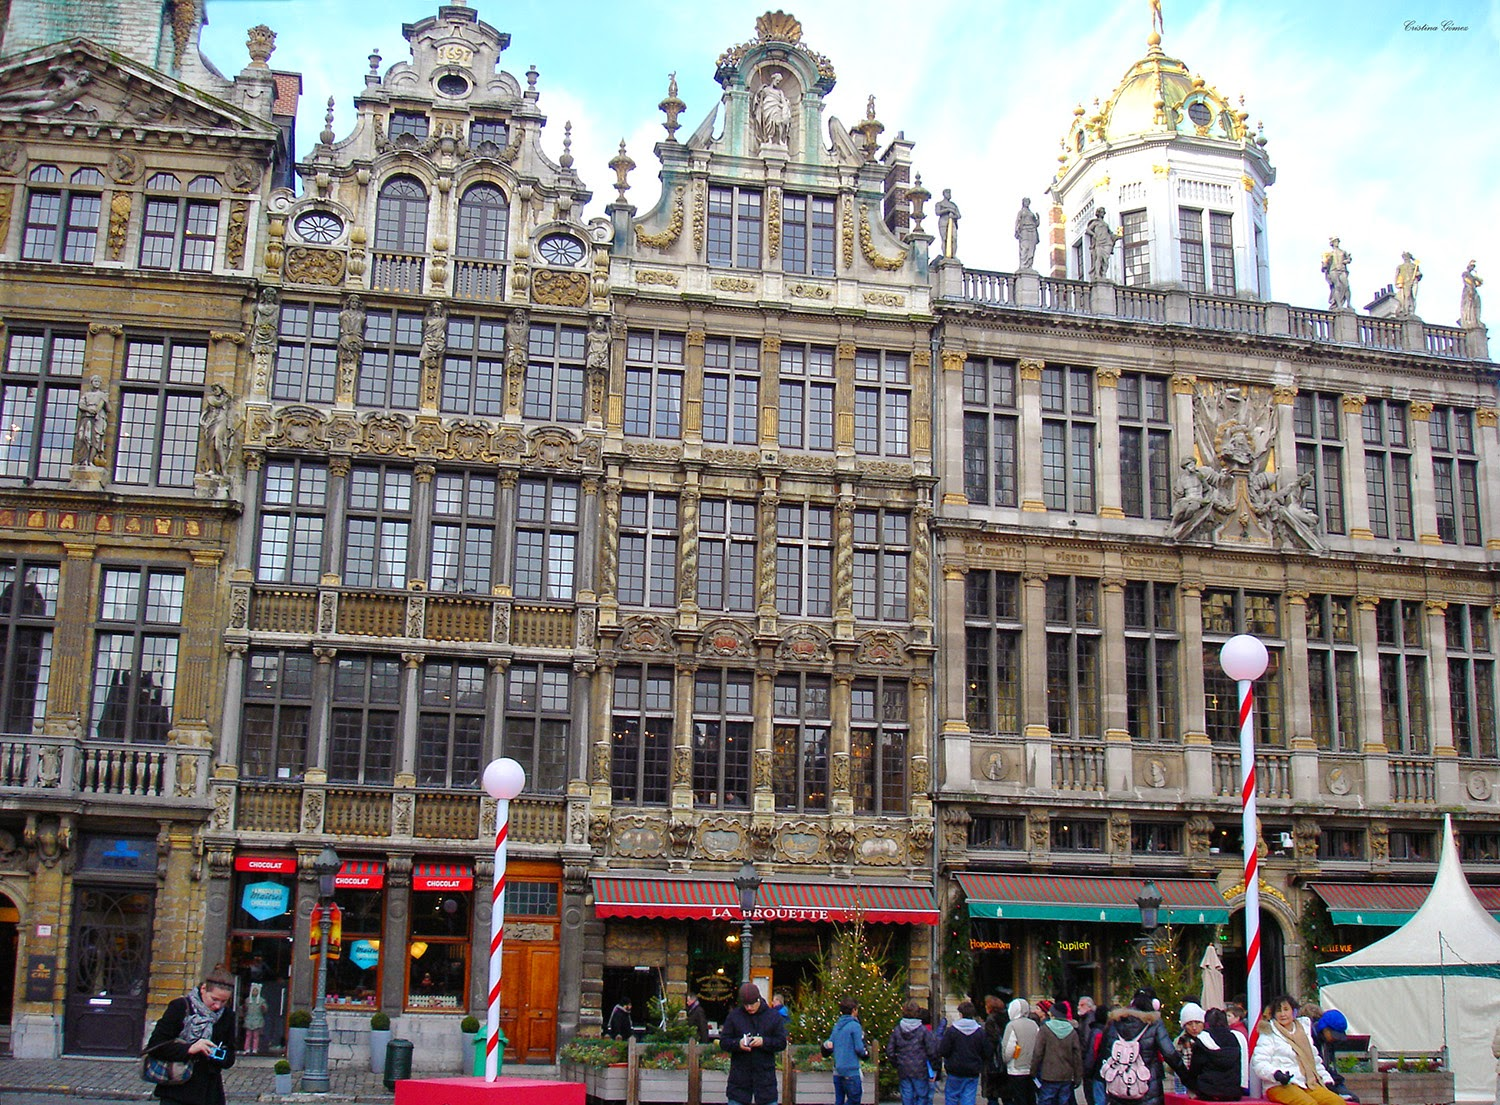 Christmas decorations in Brussels